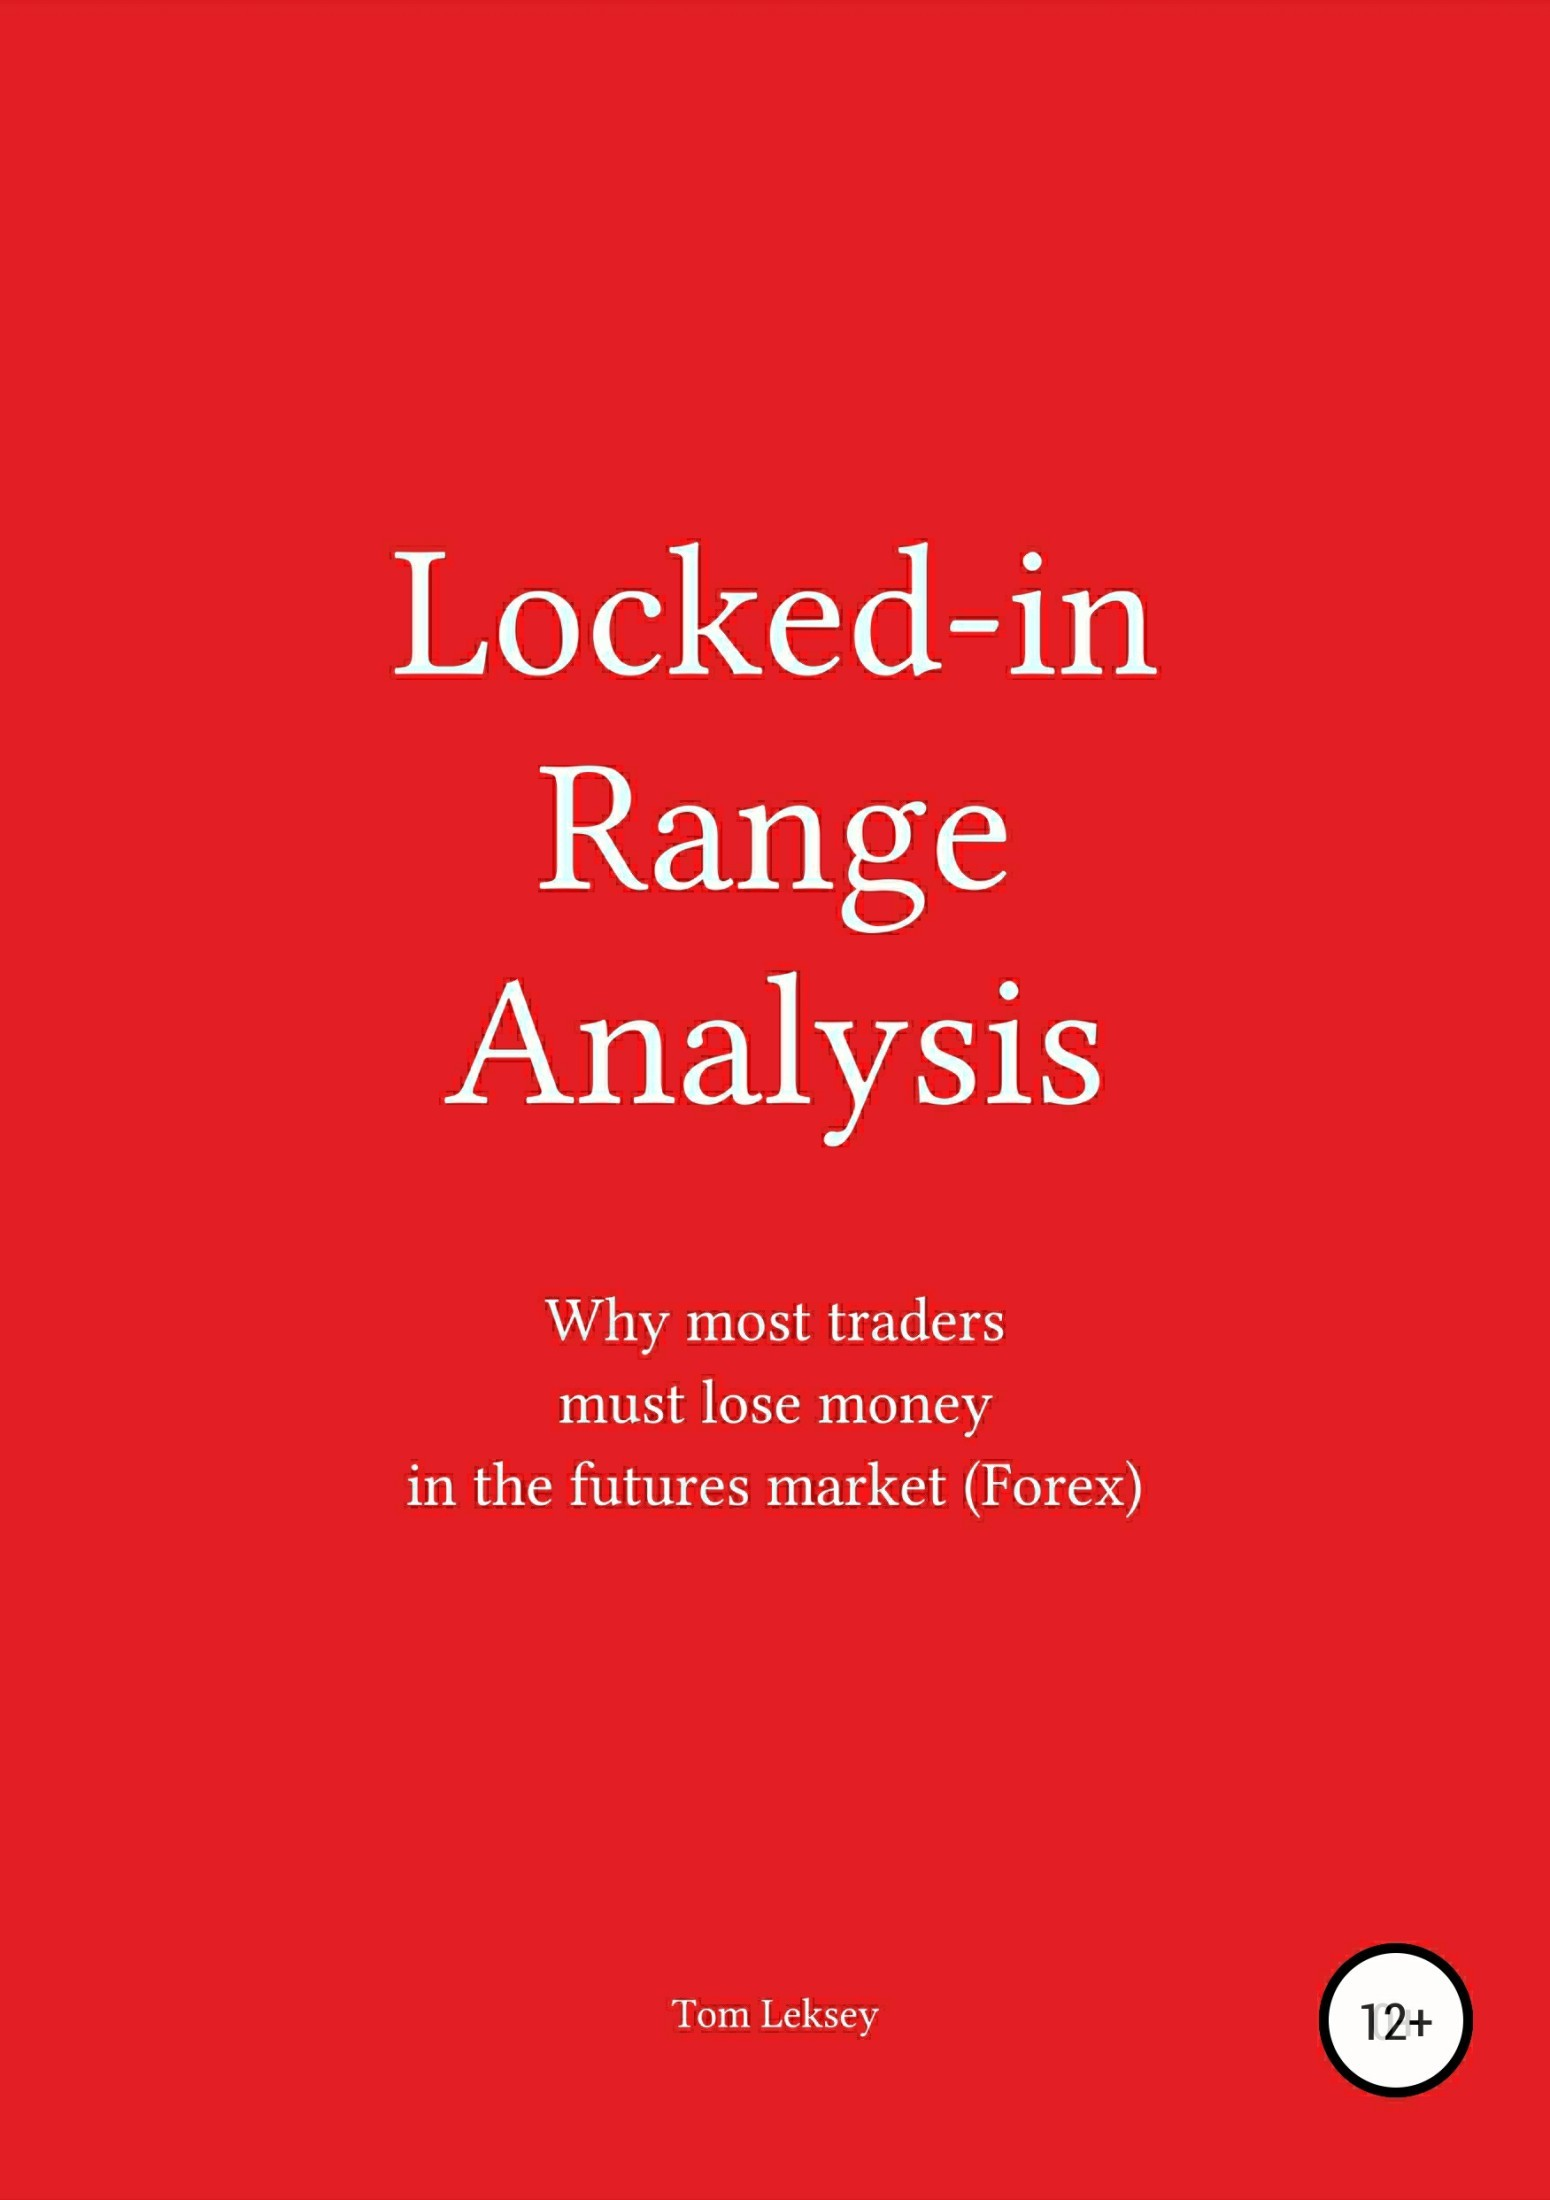 Tom Leksey Locked-in Range Analysis: Why most traders must lose money in the futures market (Forex)